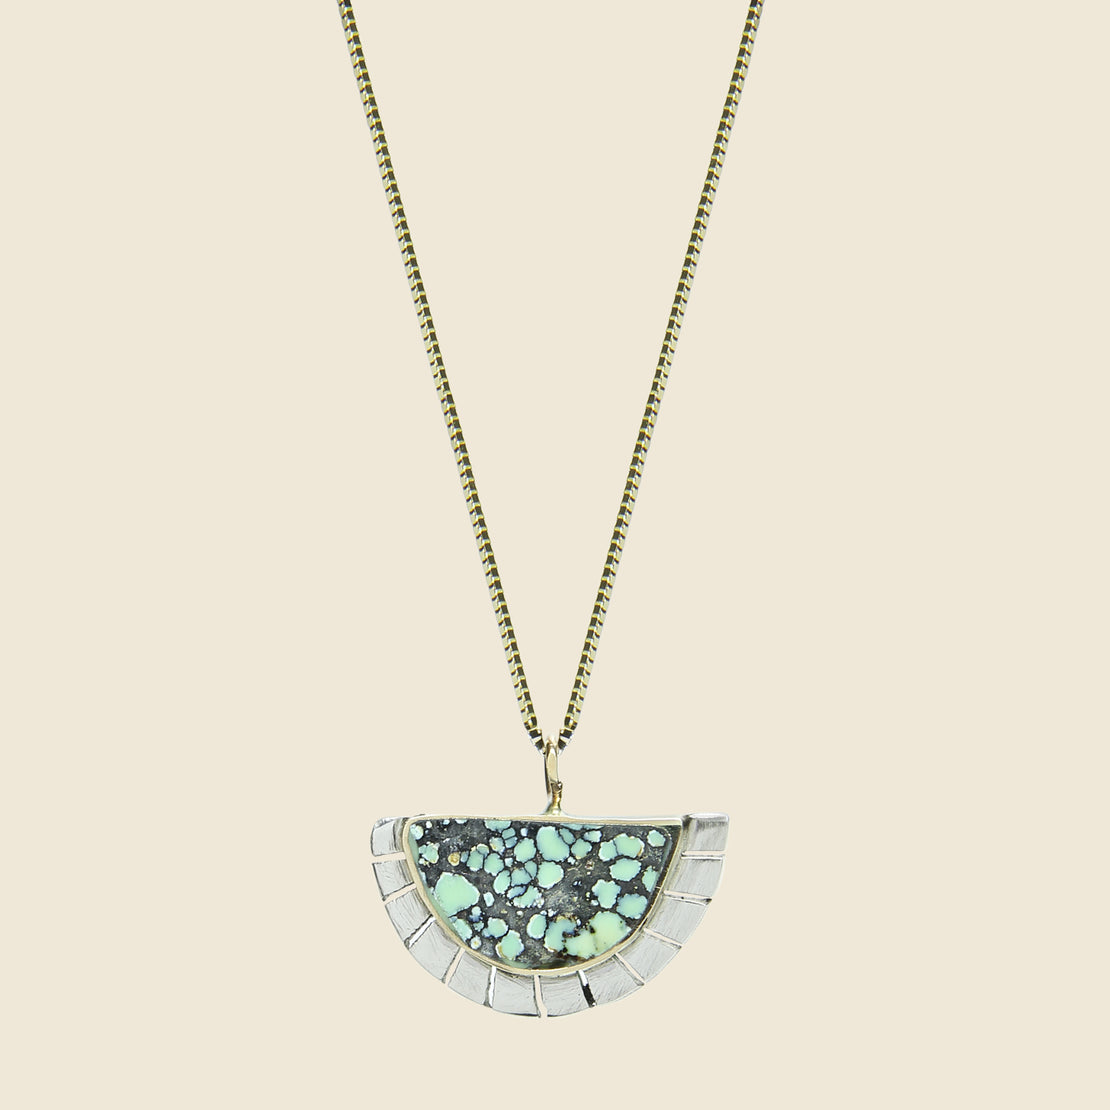 Young in the Mountains Selene Necklace - Peacock Turquoise